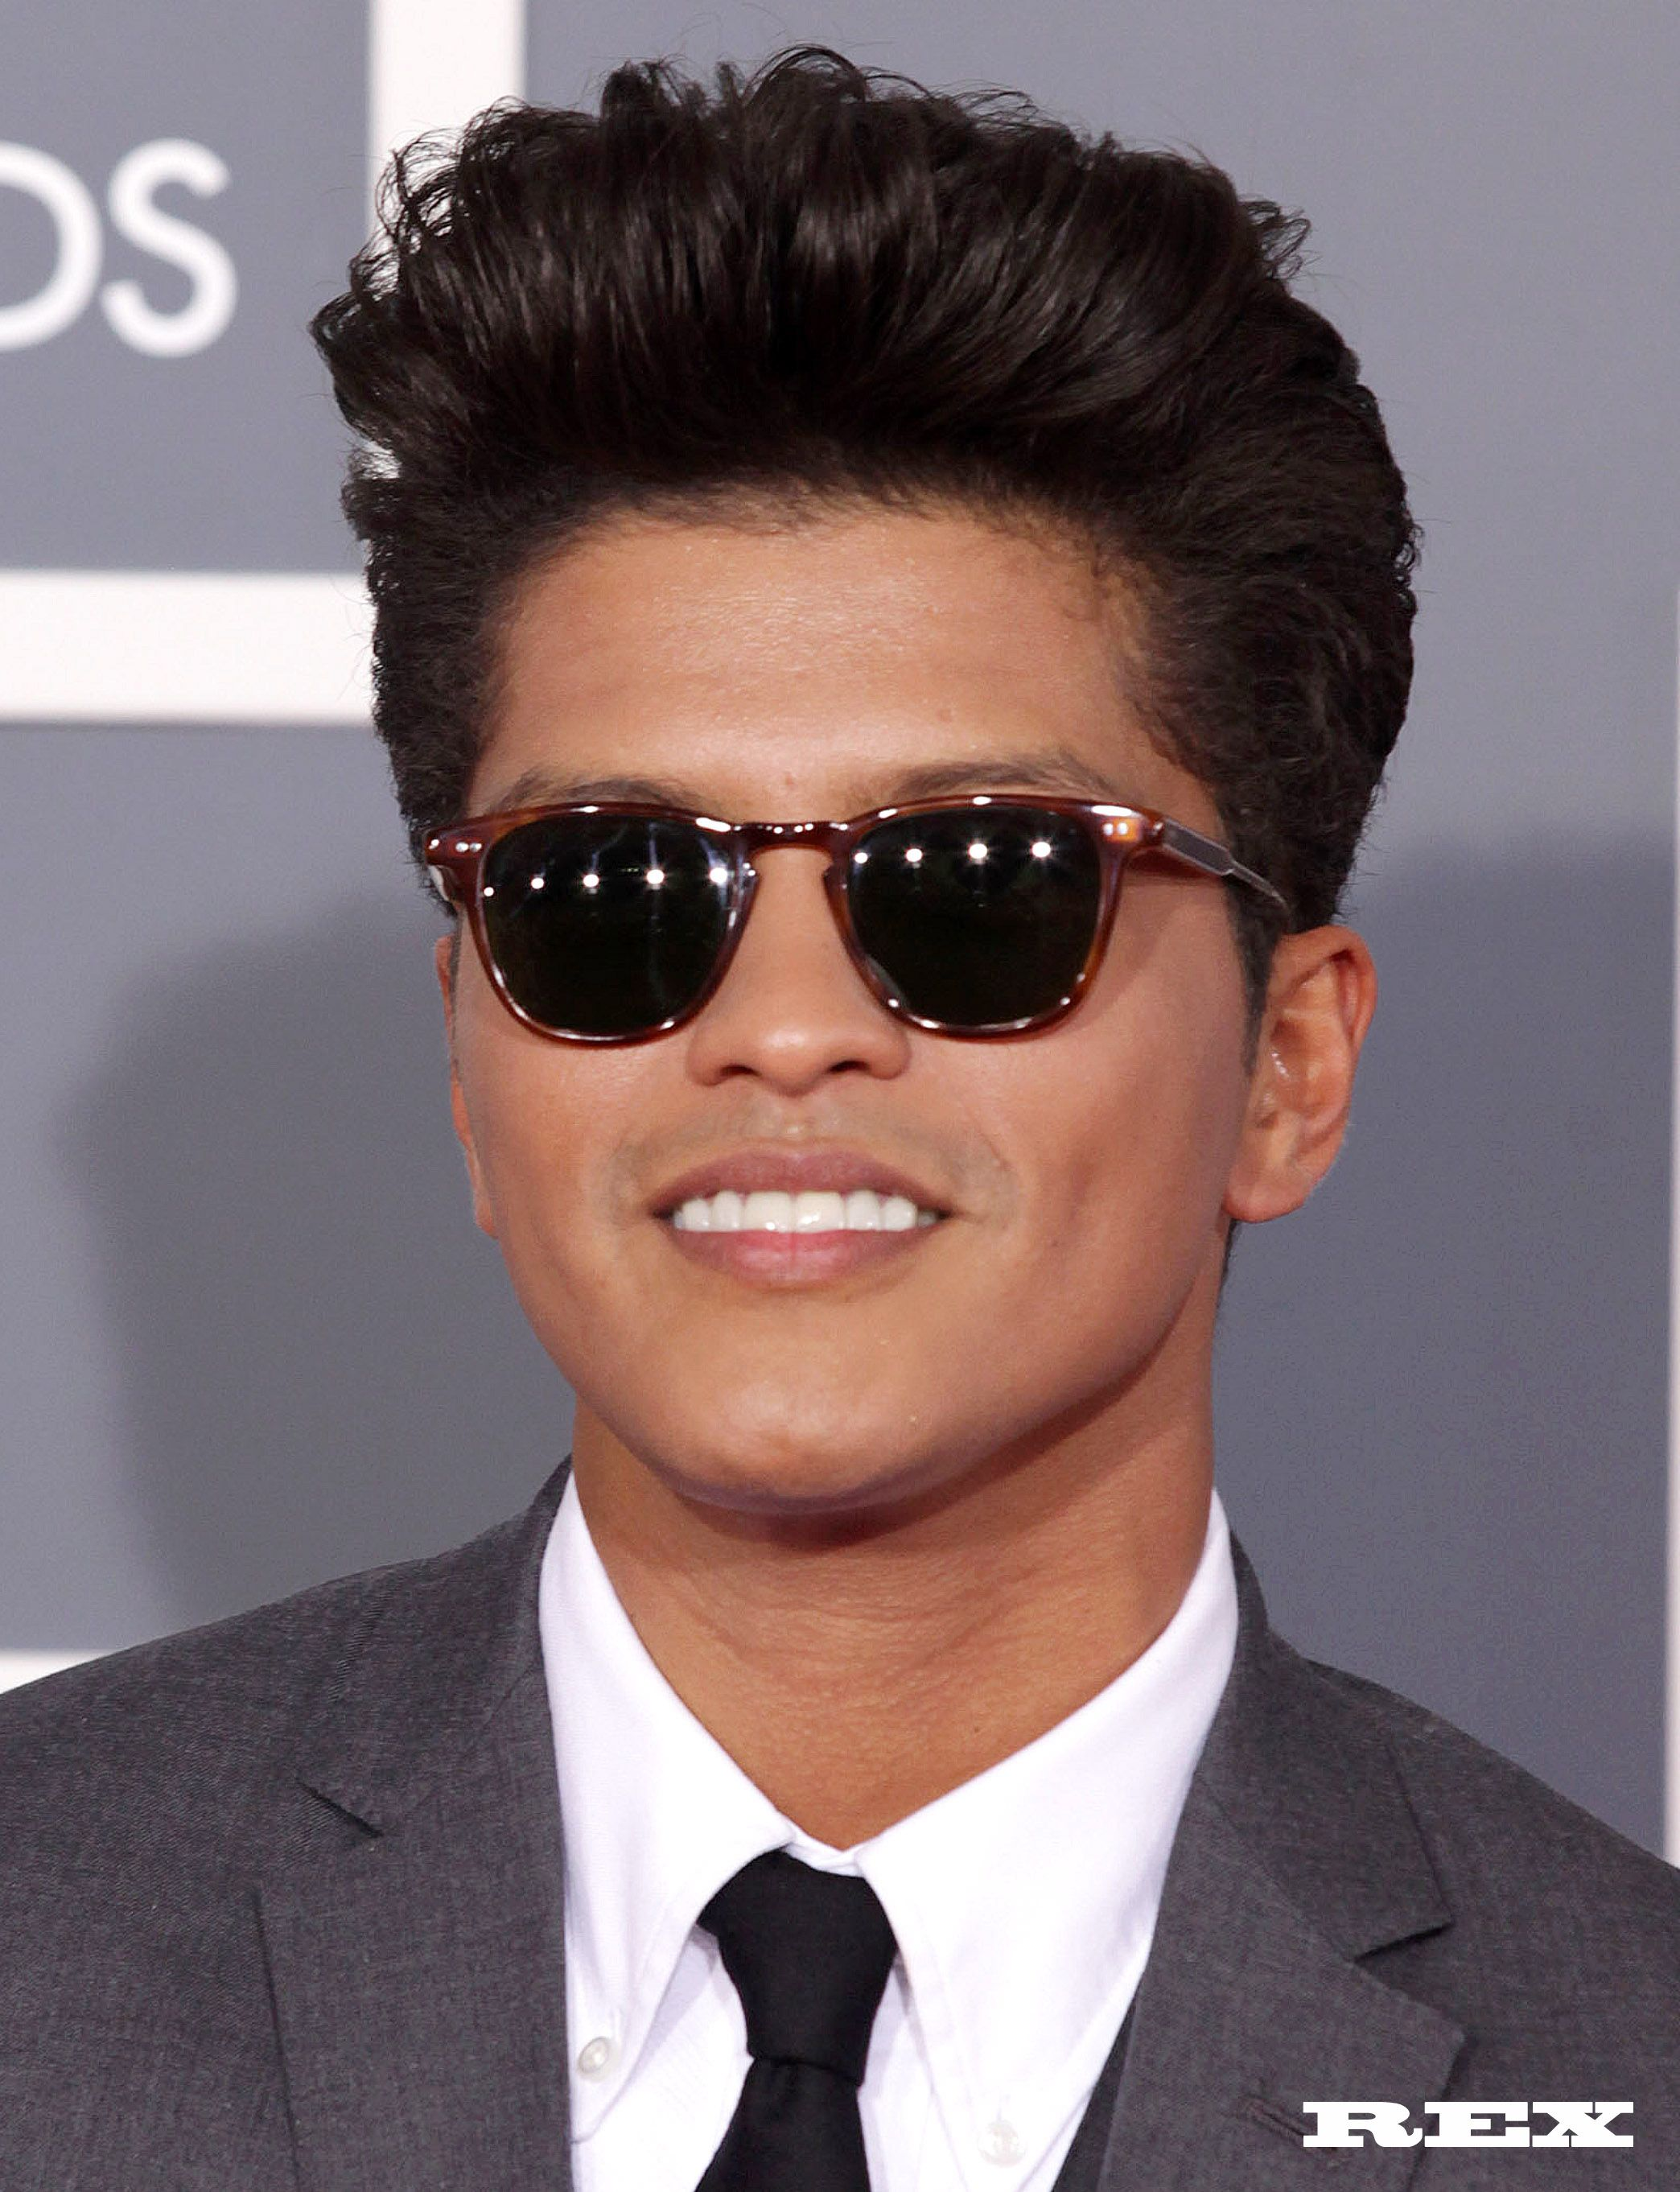 Bouffant 50 s quiff from Bruno Mars at the Grammys This look is